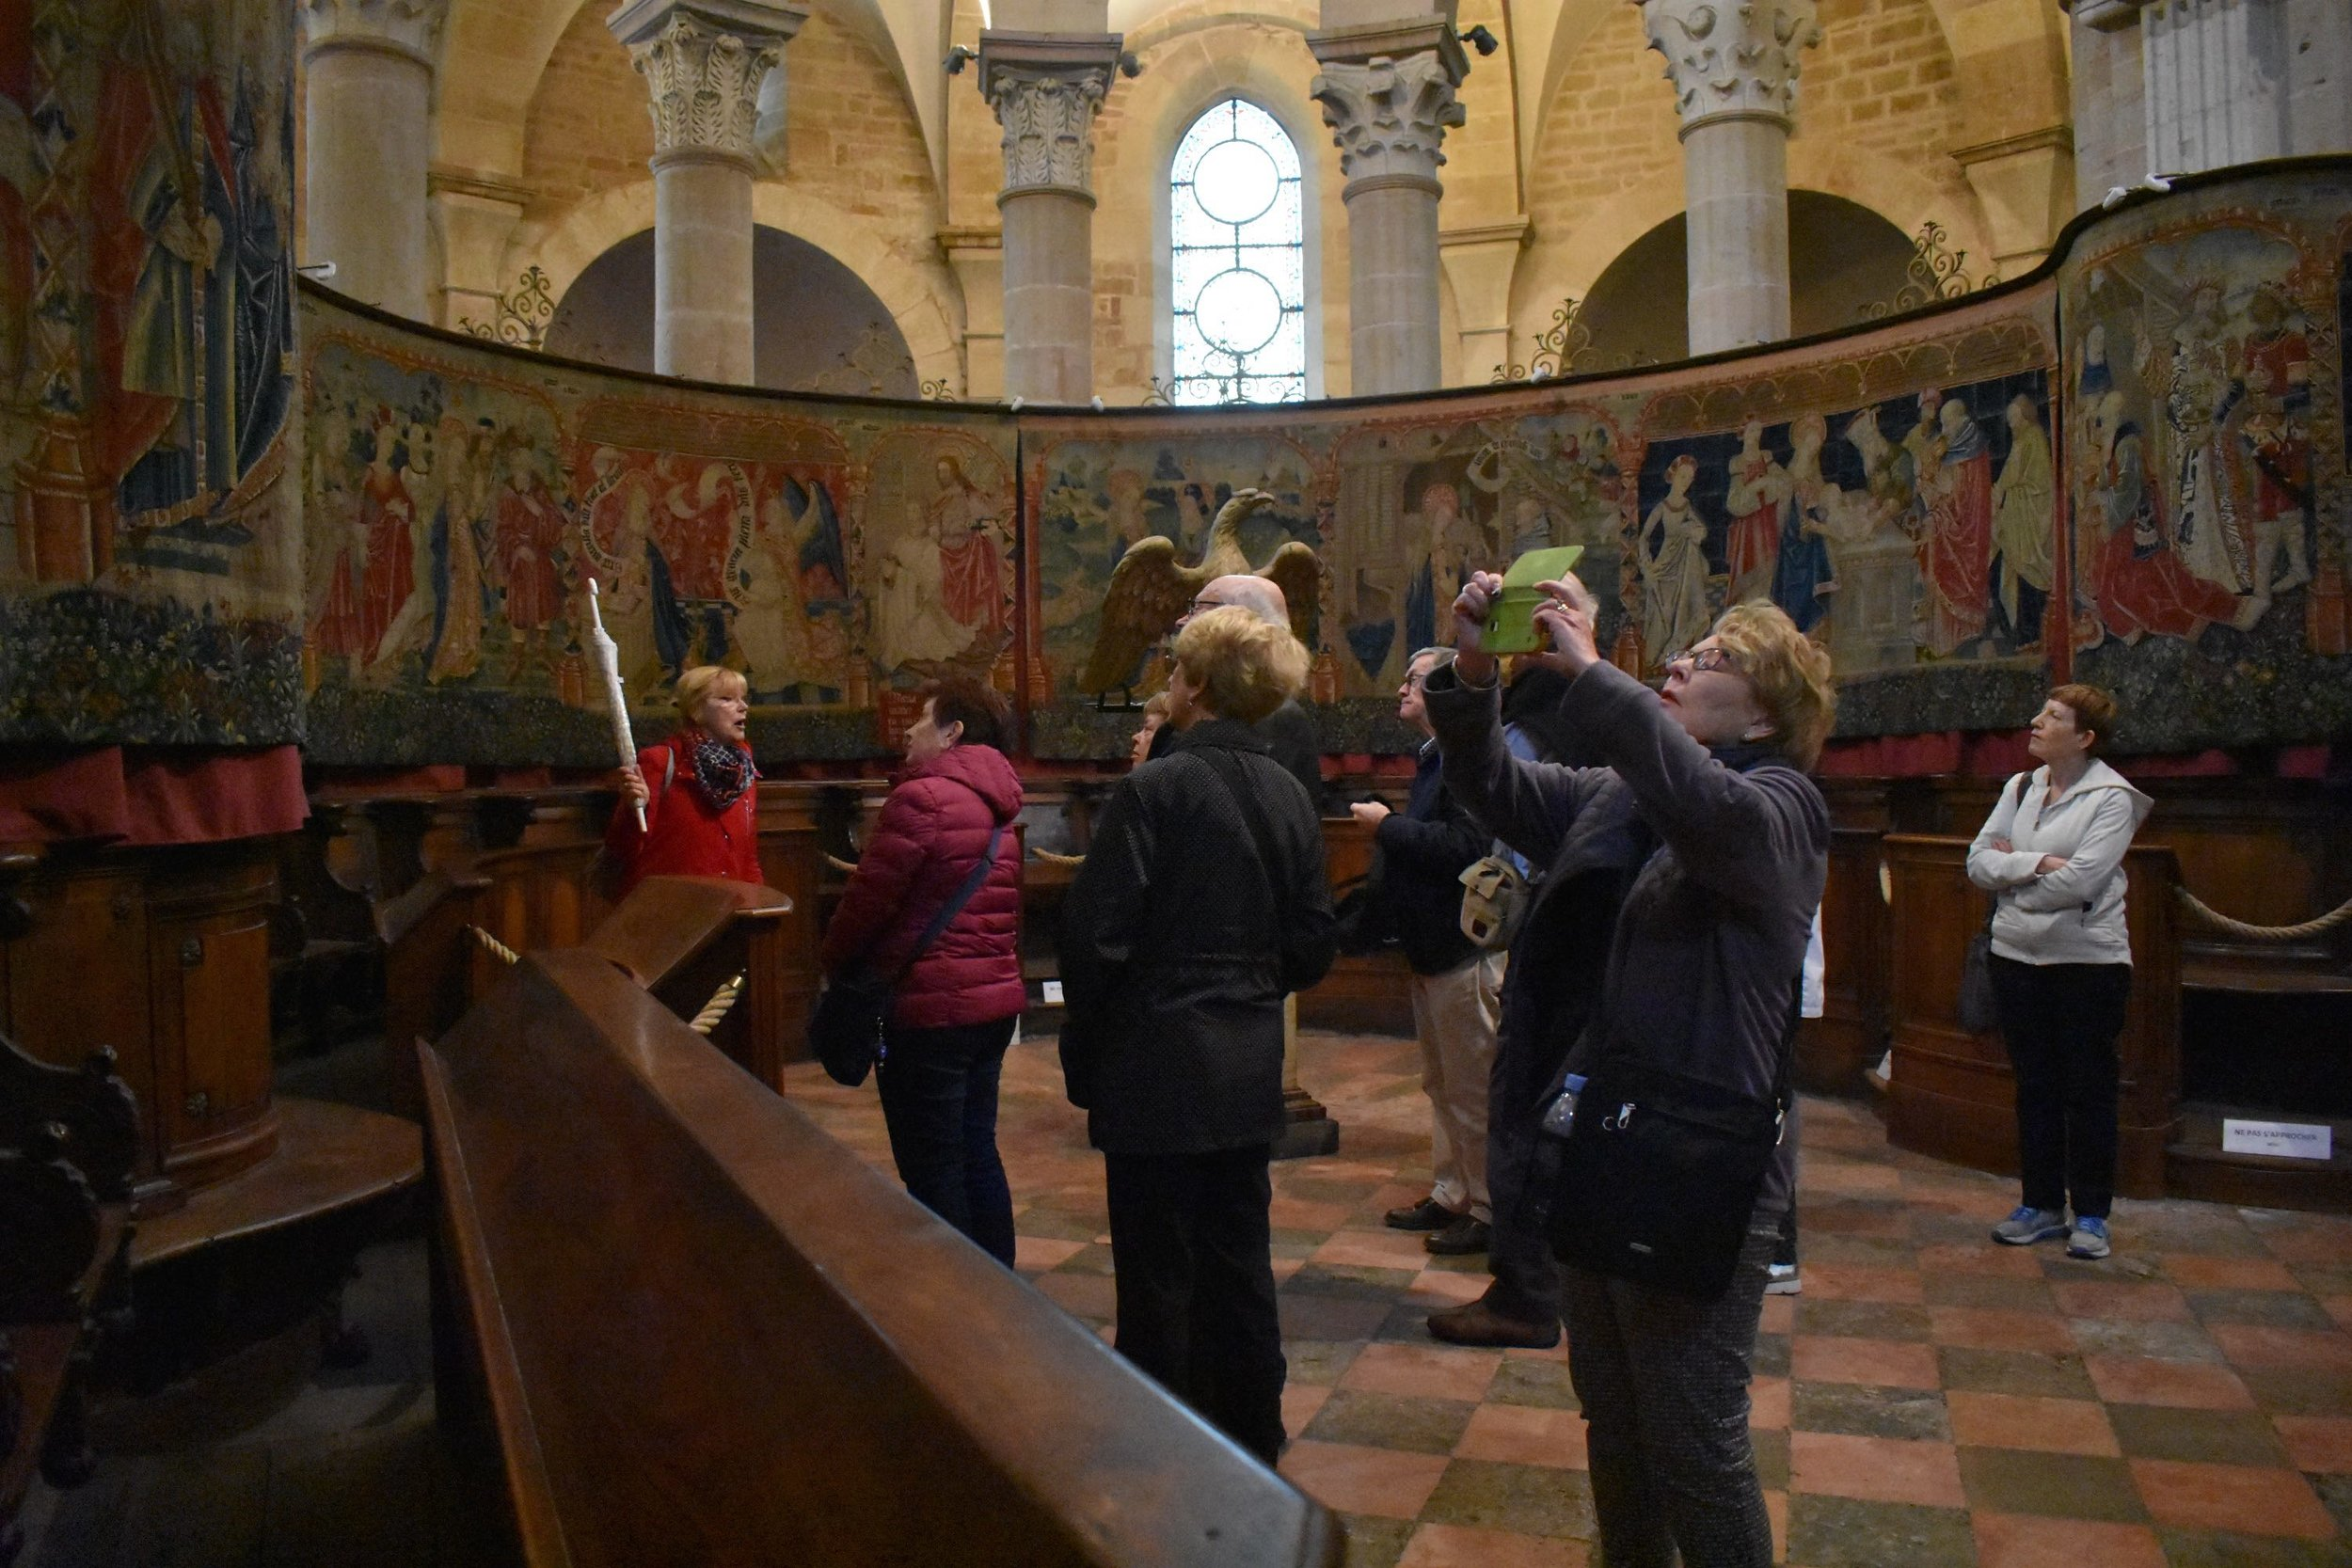 Admiring France's famous tapestries